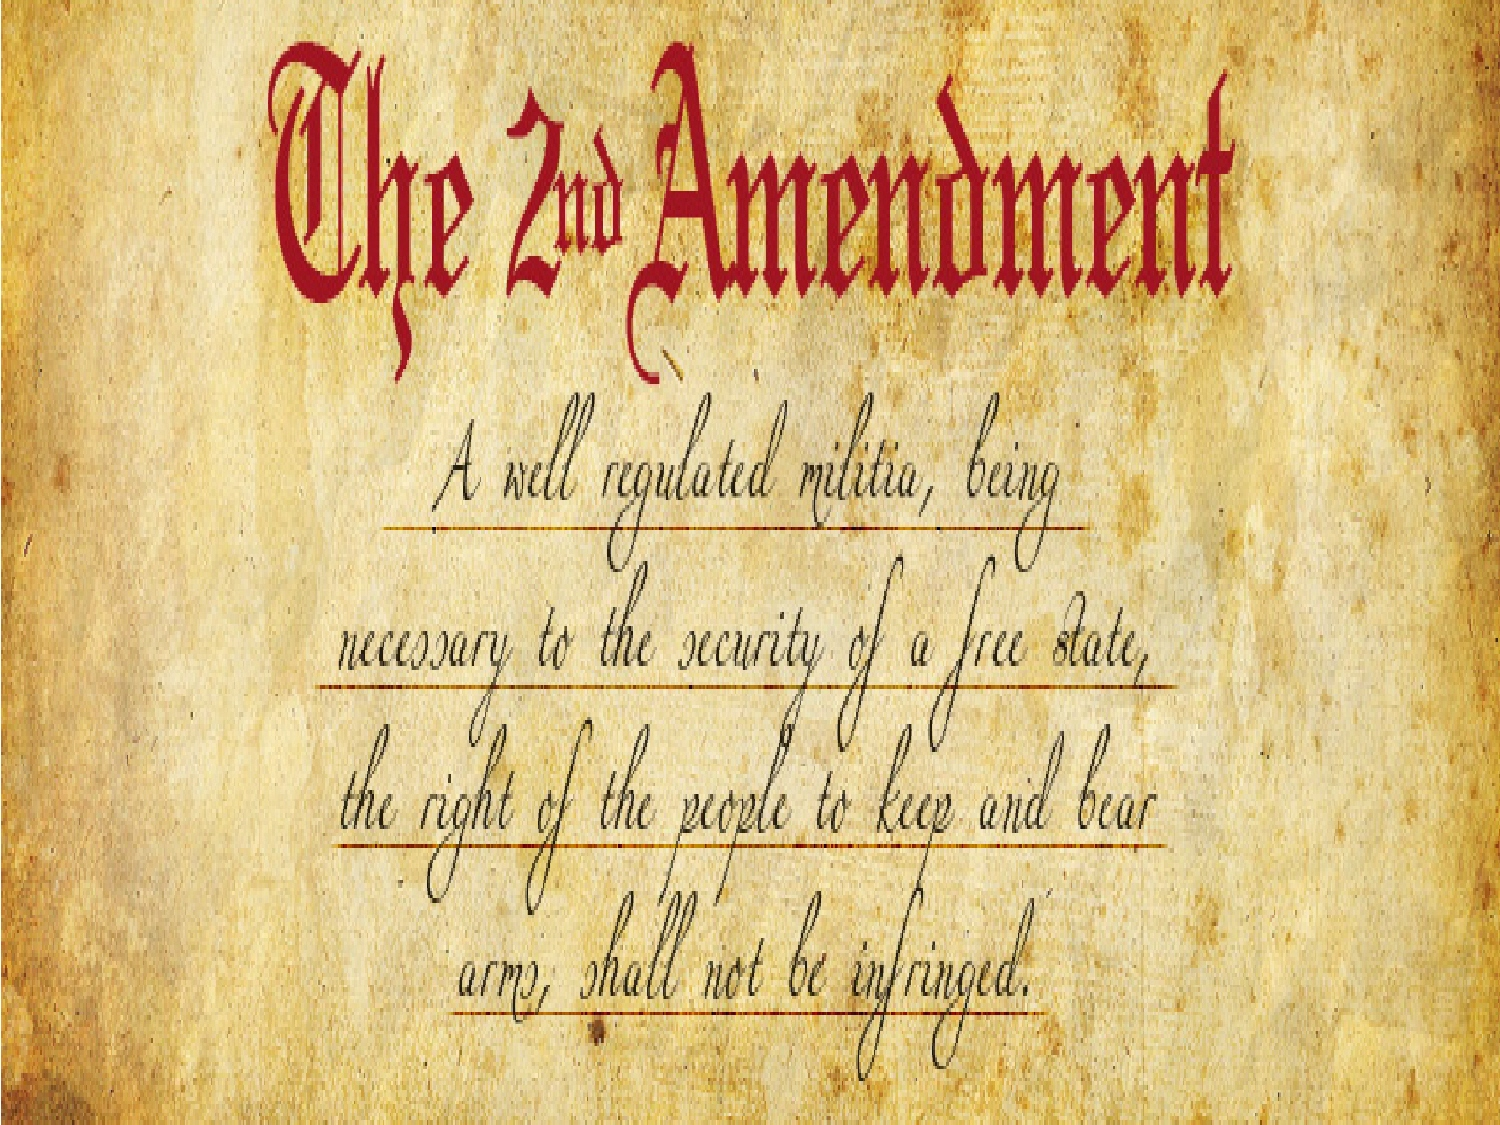 15th amendment of the constitution